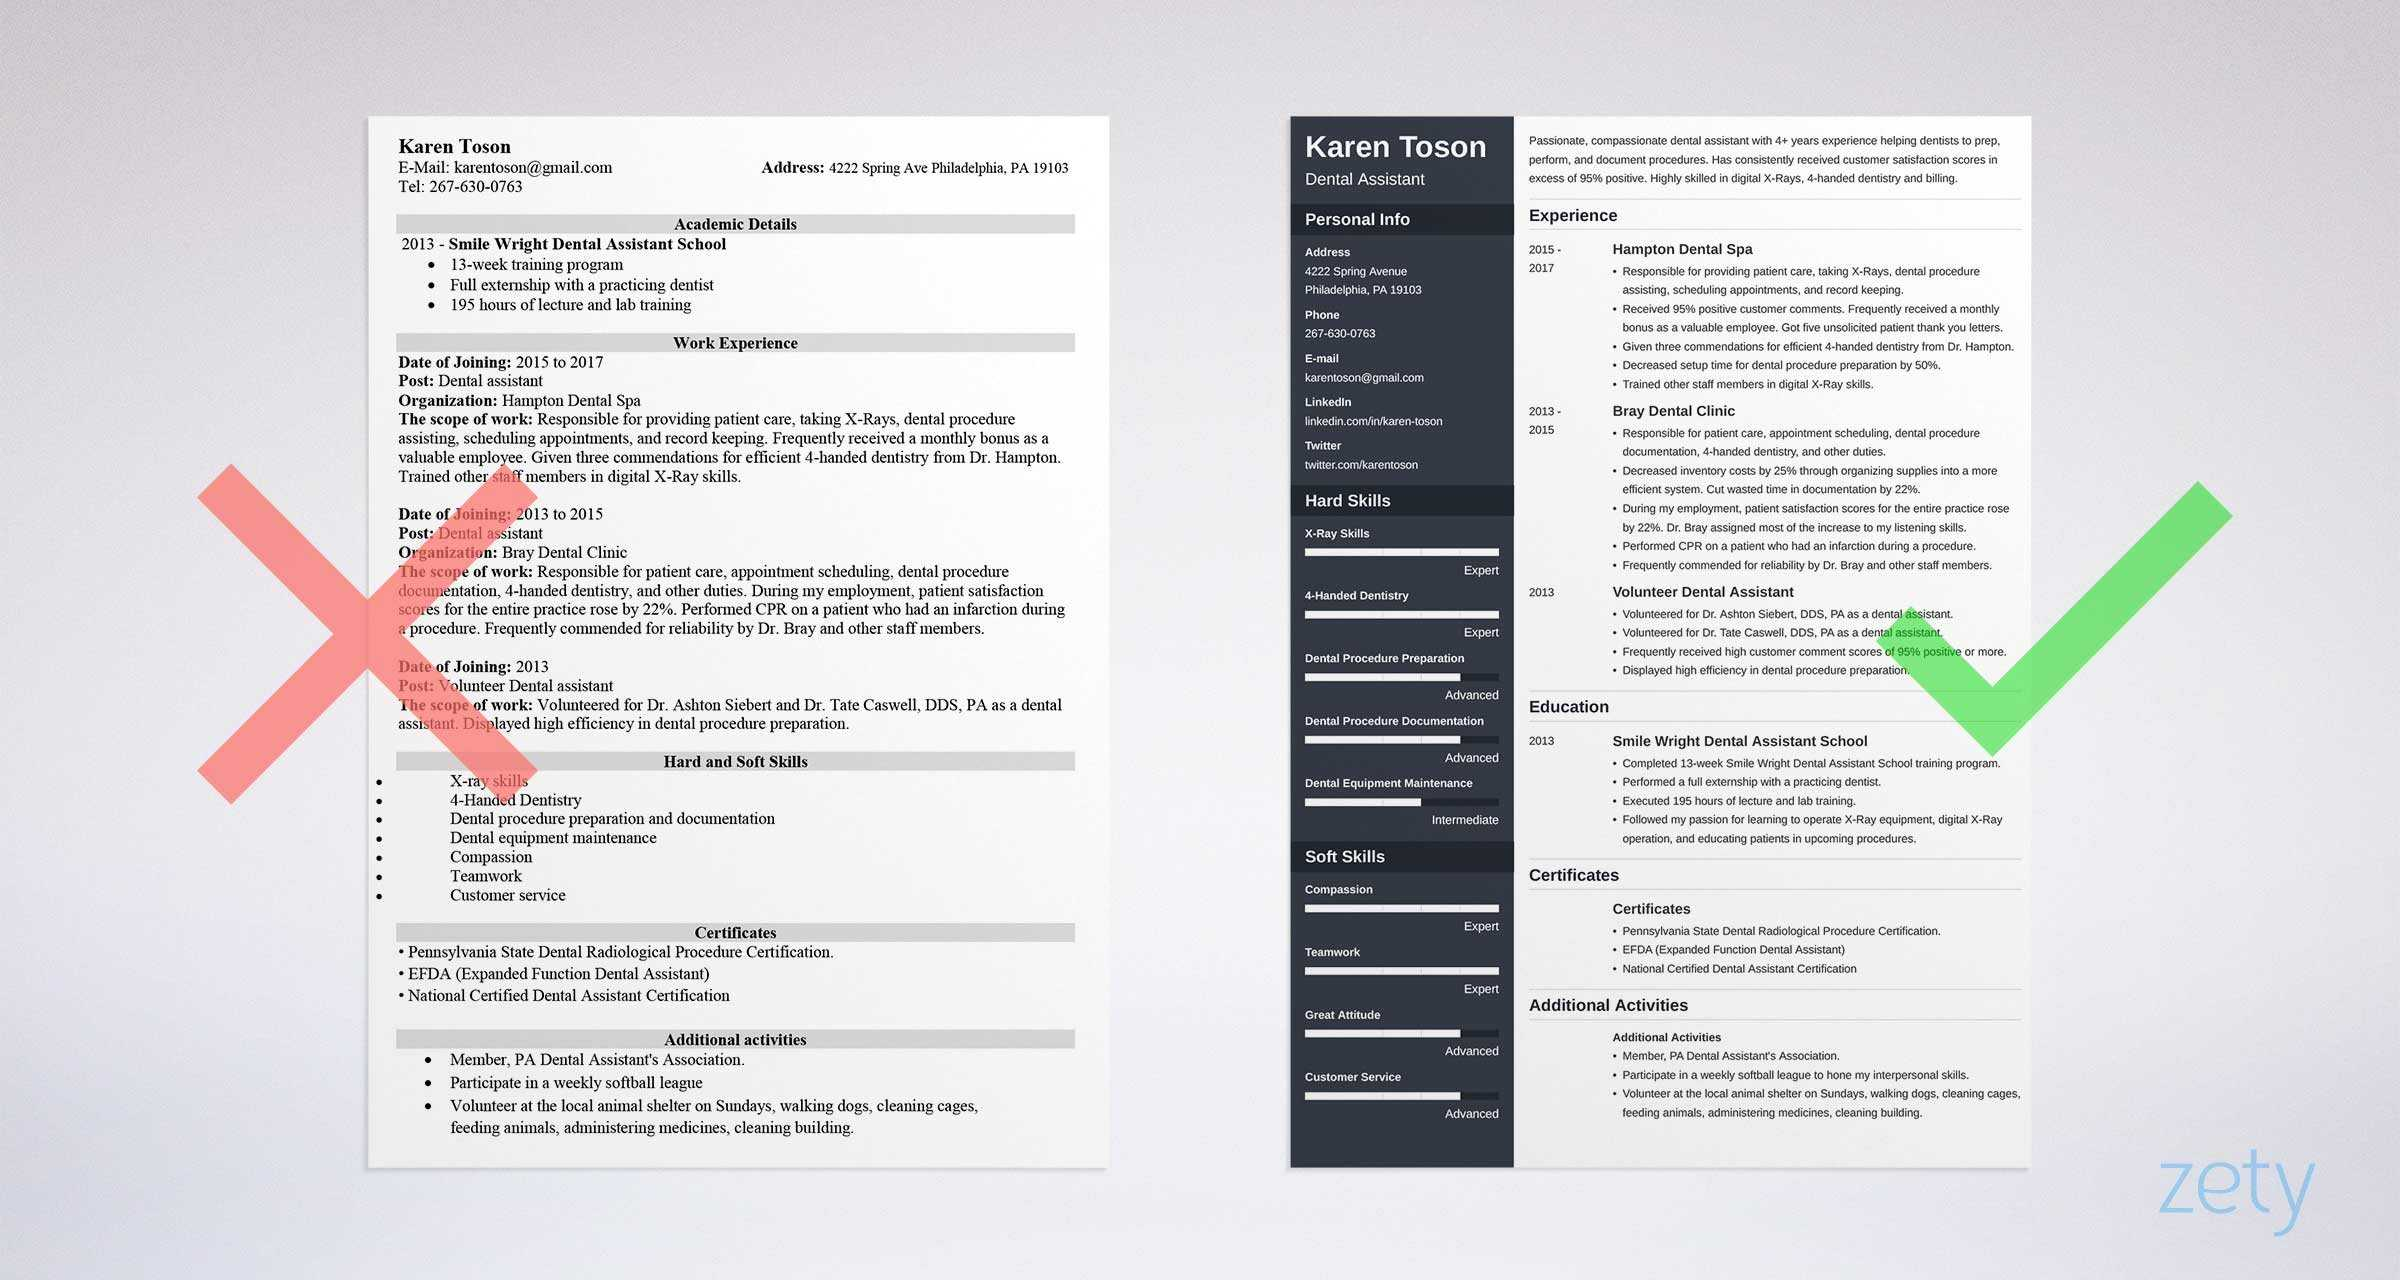 15 One Page Resume Templates [Examples Of 1 Page Format] with regard to How To Find A Resume Template On Word